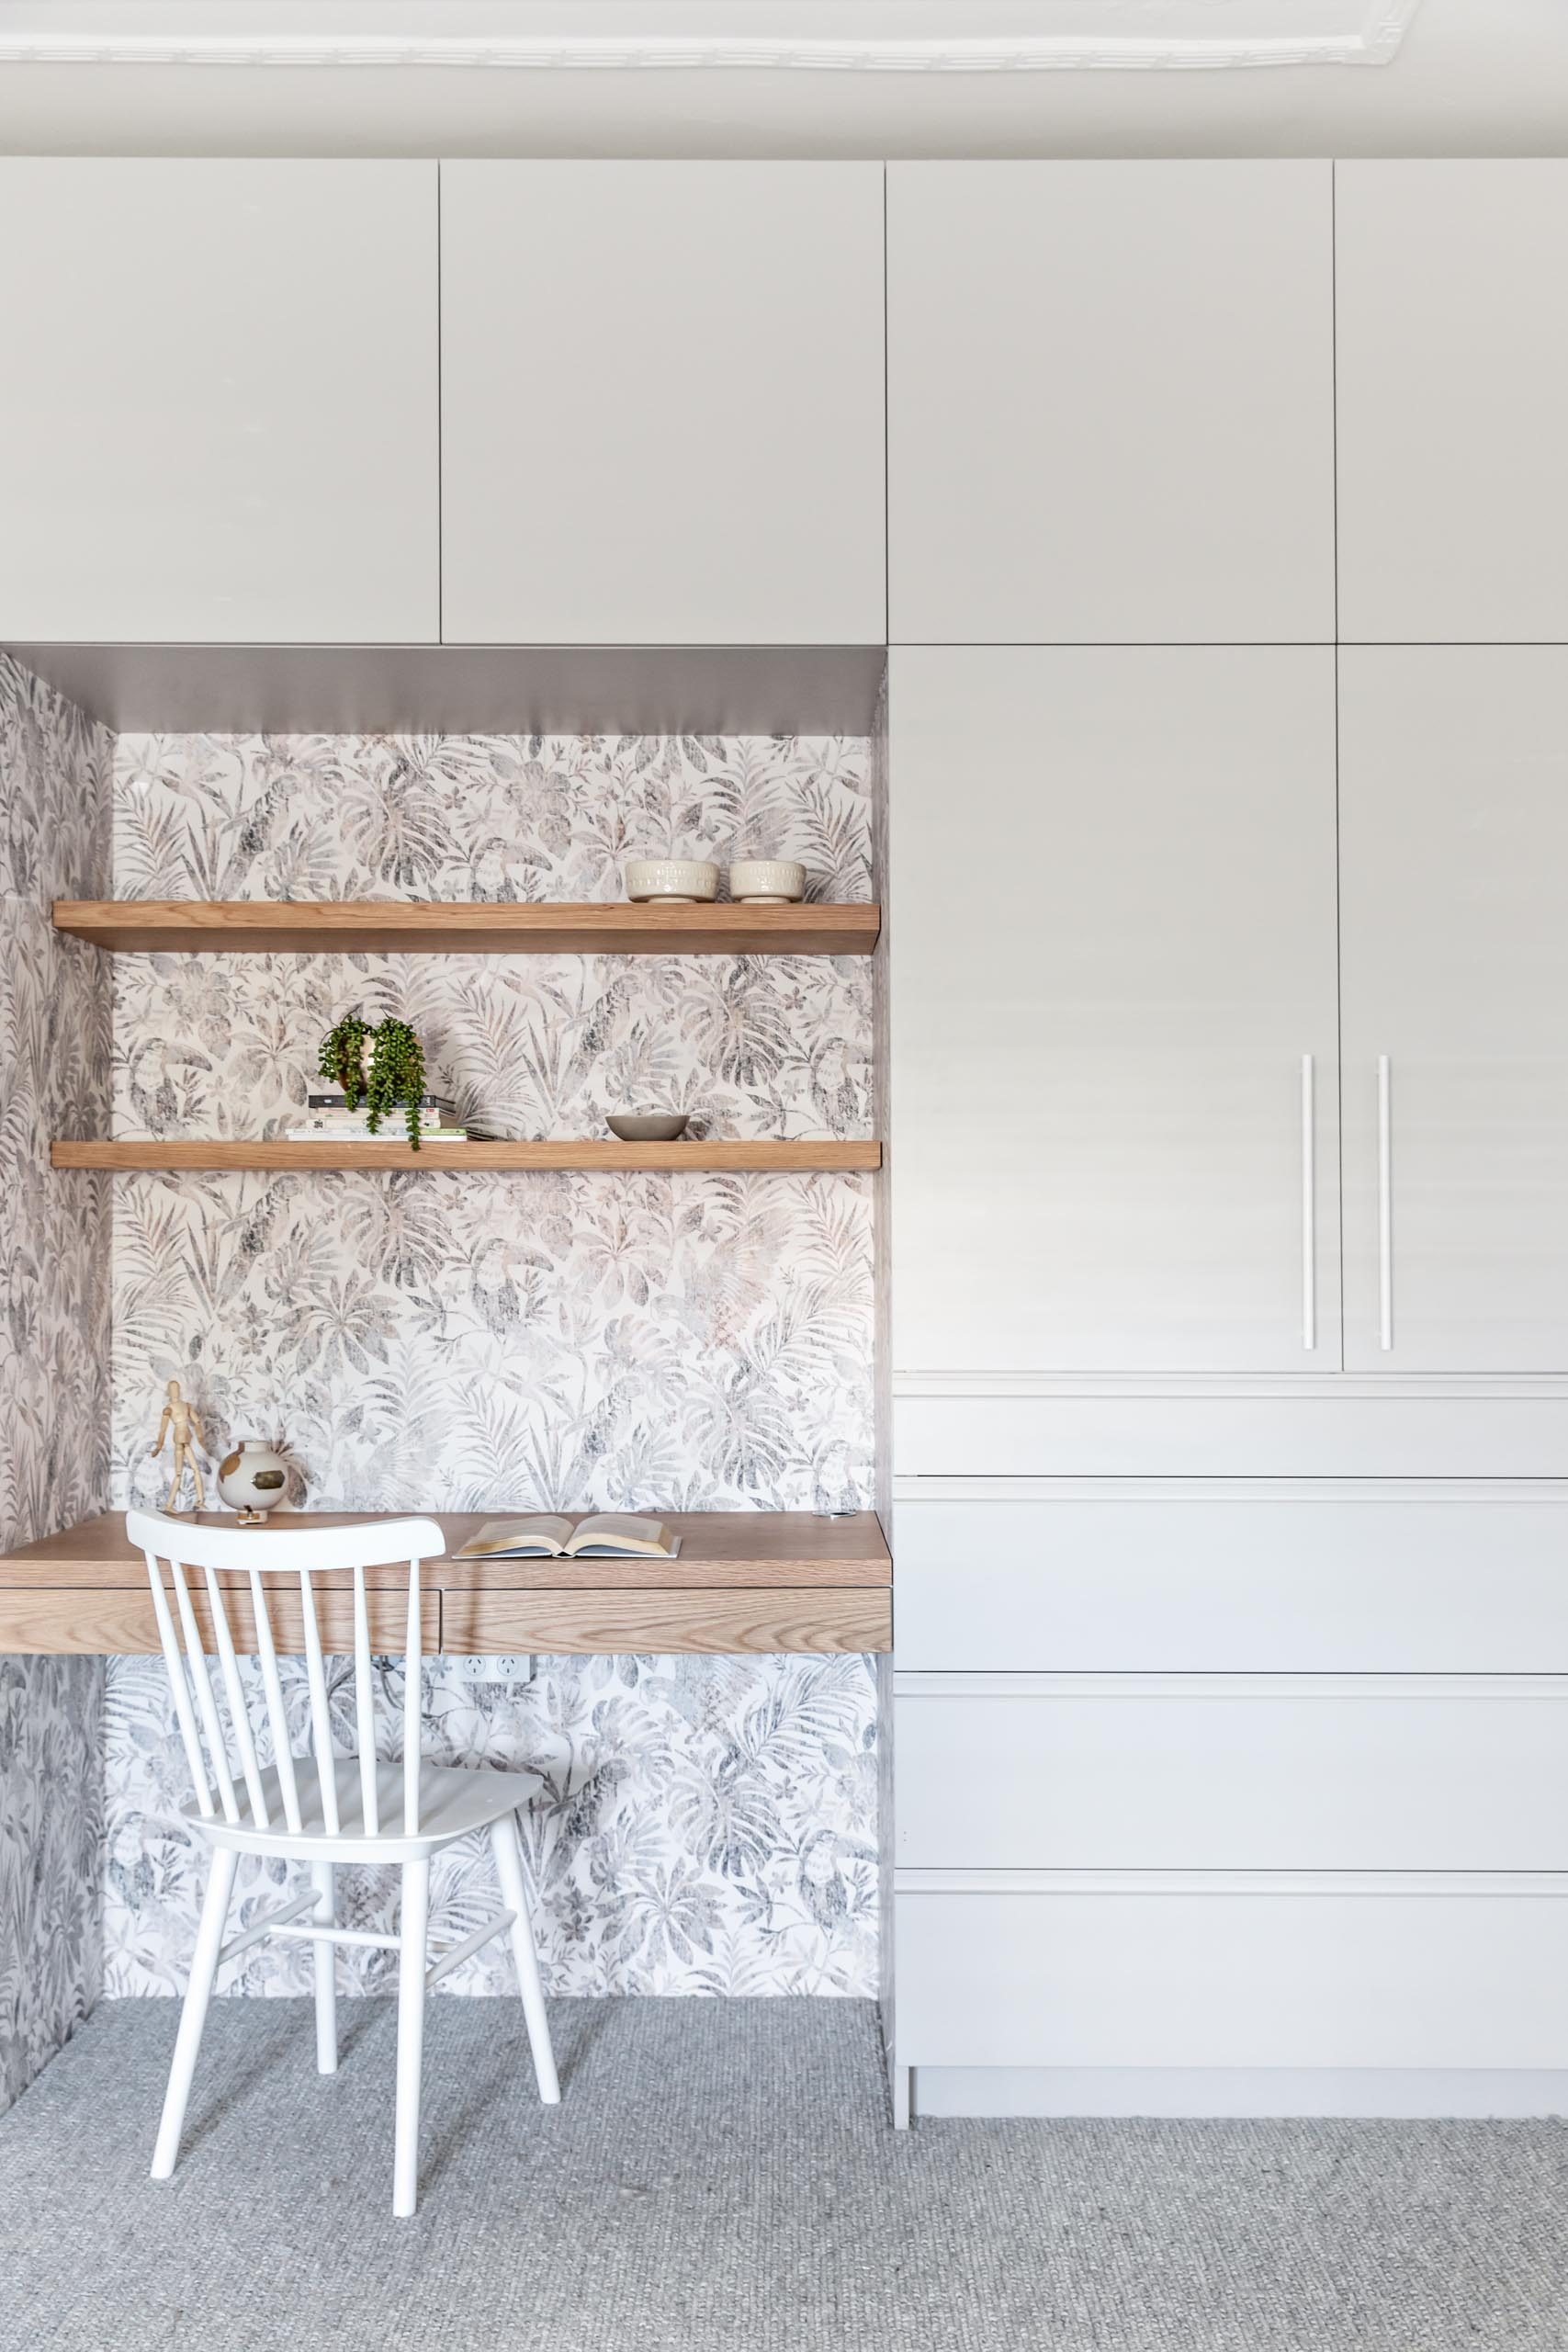 A wall of cabinets and drawers surround a built-in wood desk and shelving. The desk nook is also lined with a botanical wallpaper.